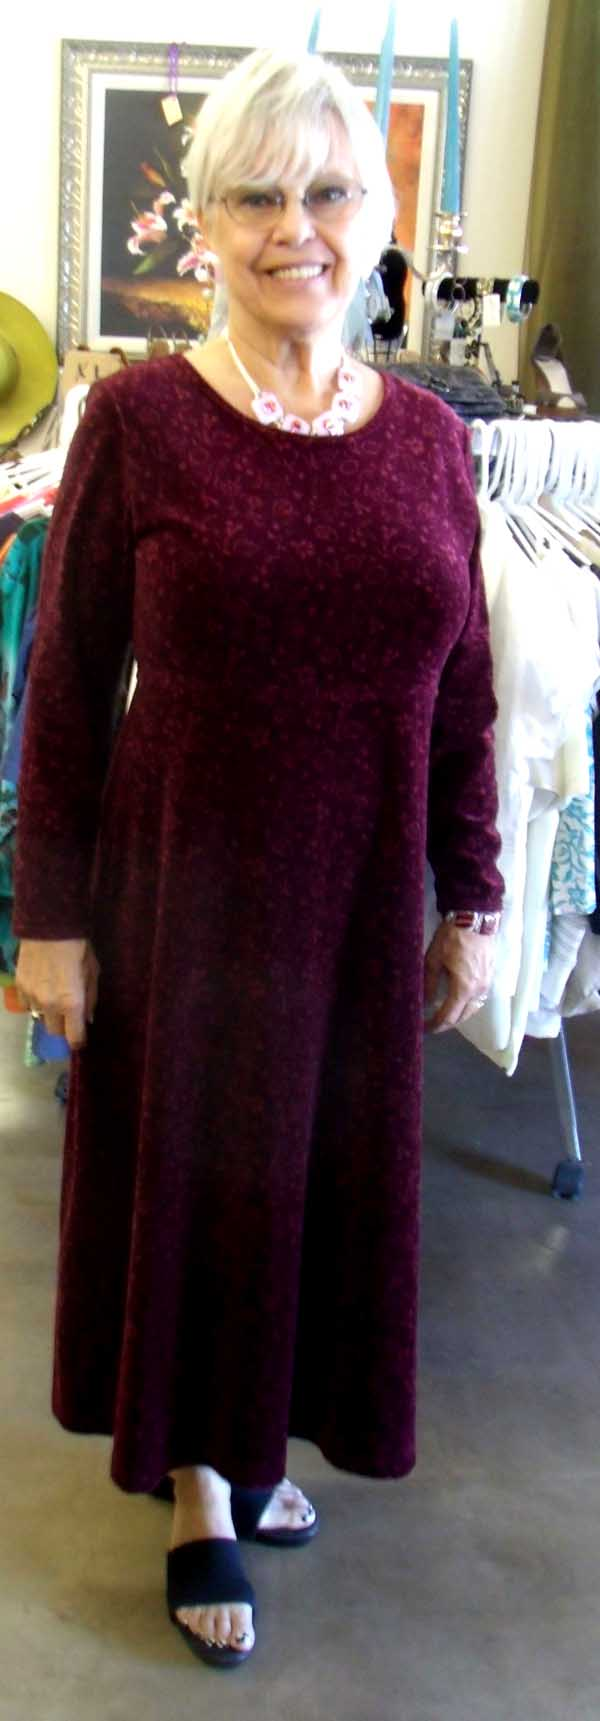 Joanne shows off a burgundy dress, highlighted by a five-piece fused glass necklace in pink, with magenta and red dichroic, and matching earrings